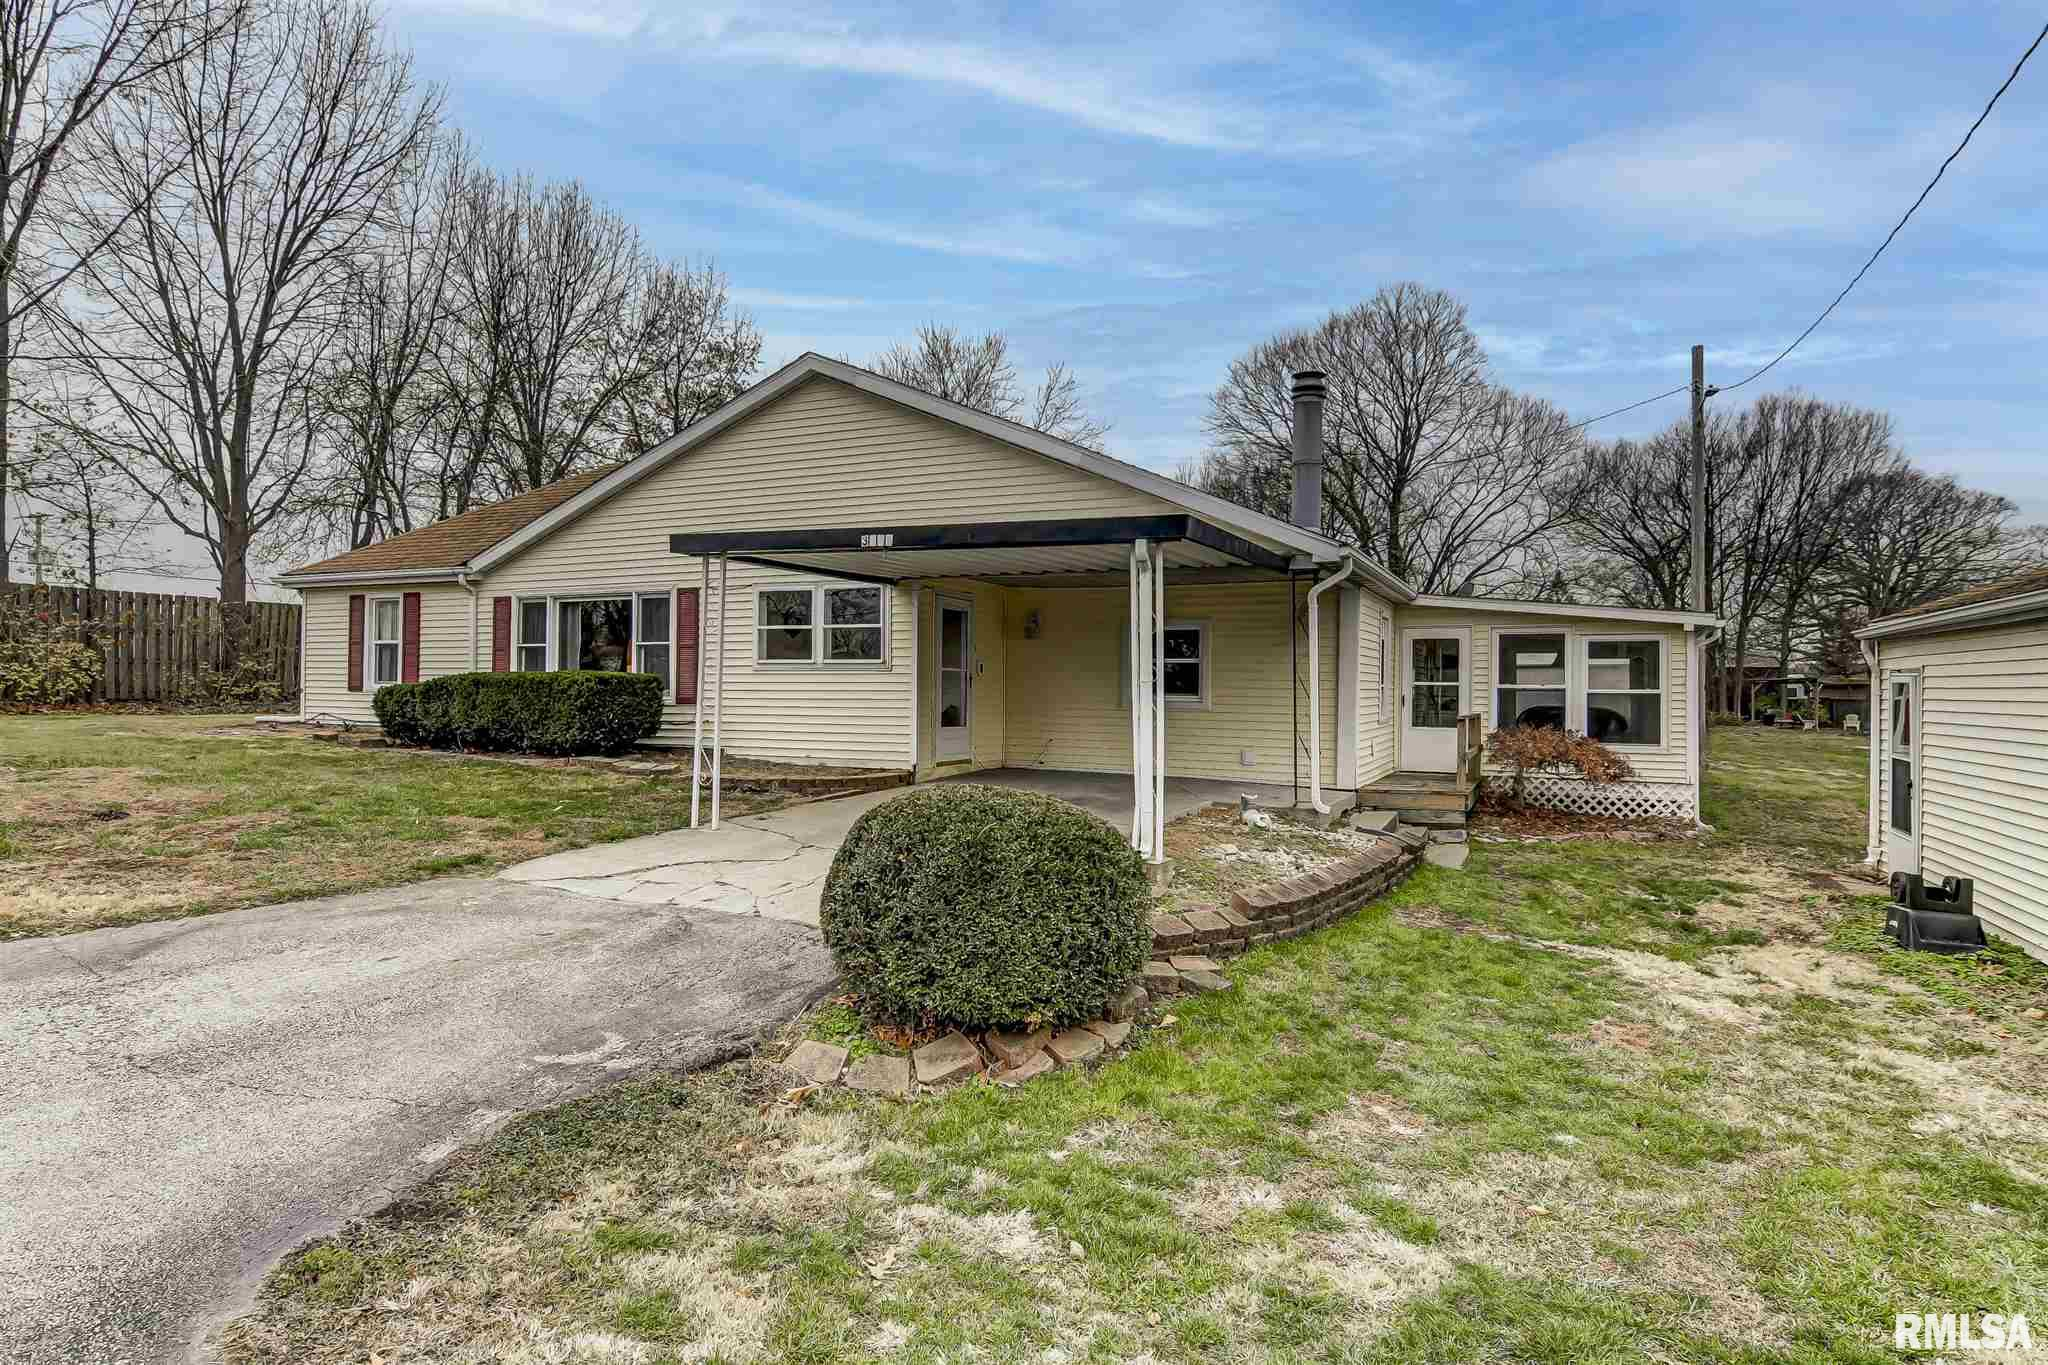 3865 Ware Property Photo - Springfield, IL real estate listing